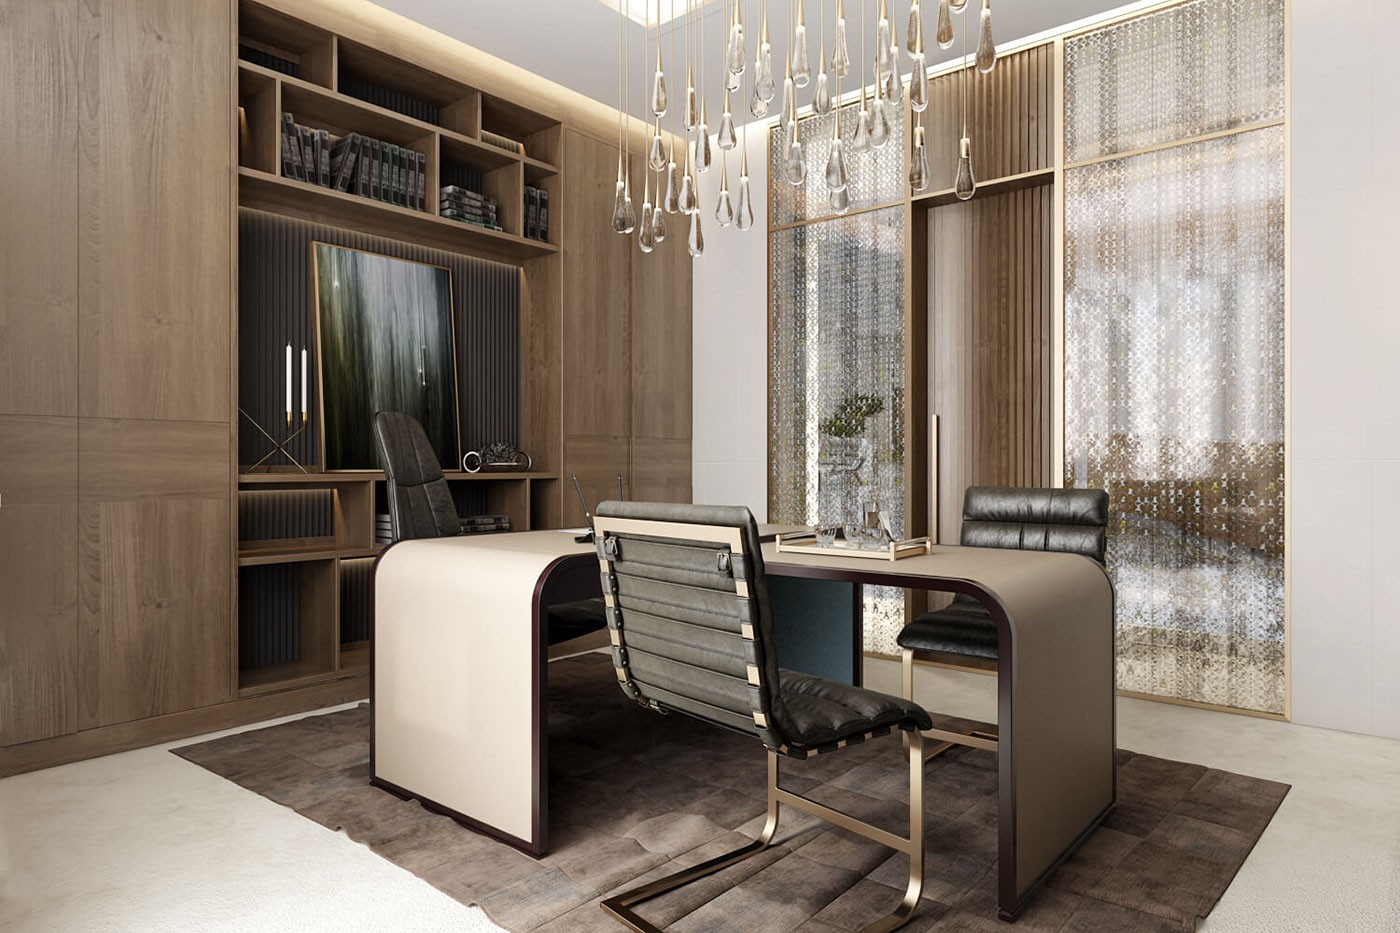 Ceo office design architectural rendering by archicgi on for Office design zen